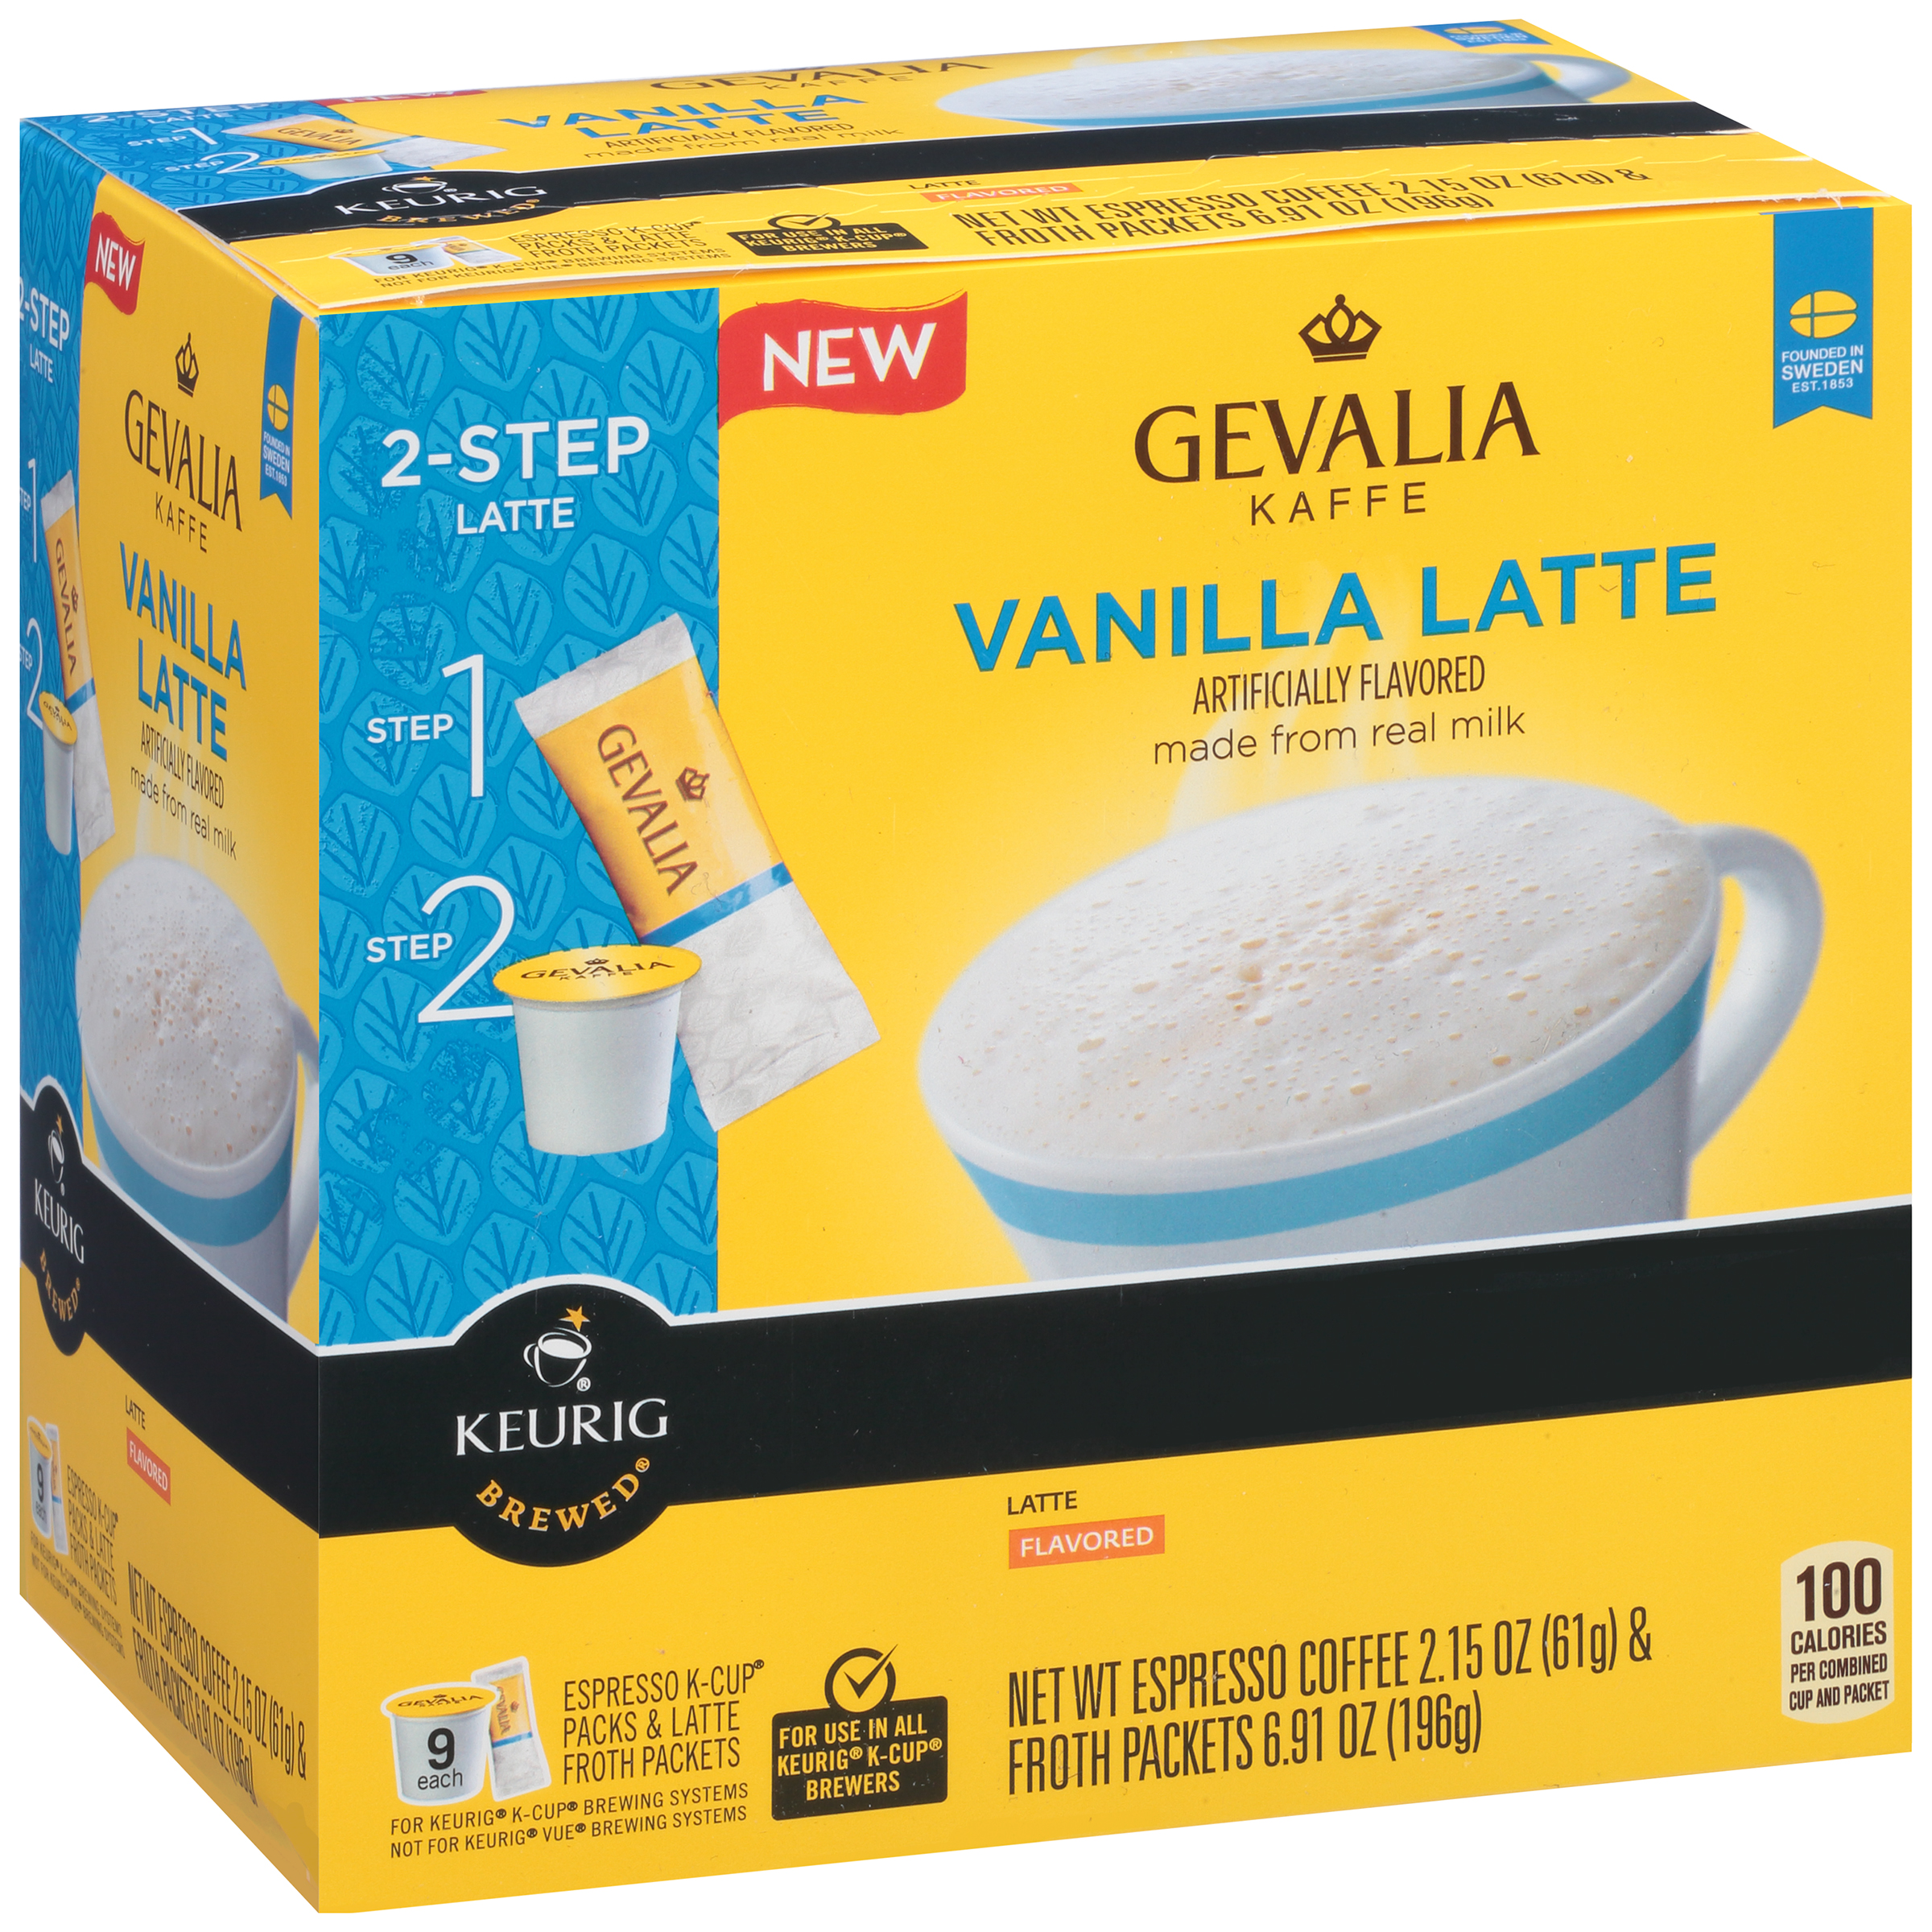 Gevalia Vanilla Latte Espresso Coffee K-Cup® Packs & Froth Packets 9 ct Box